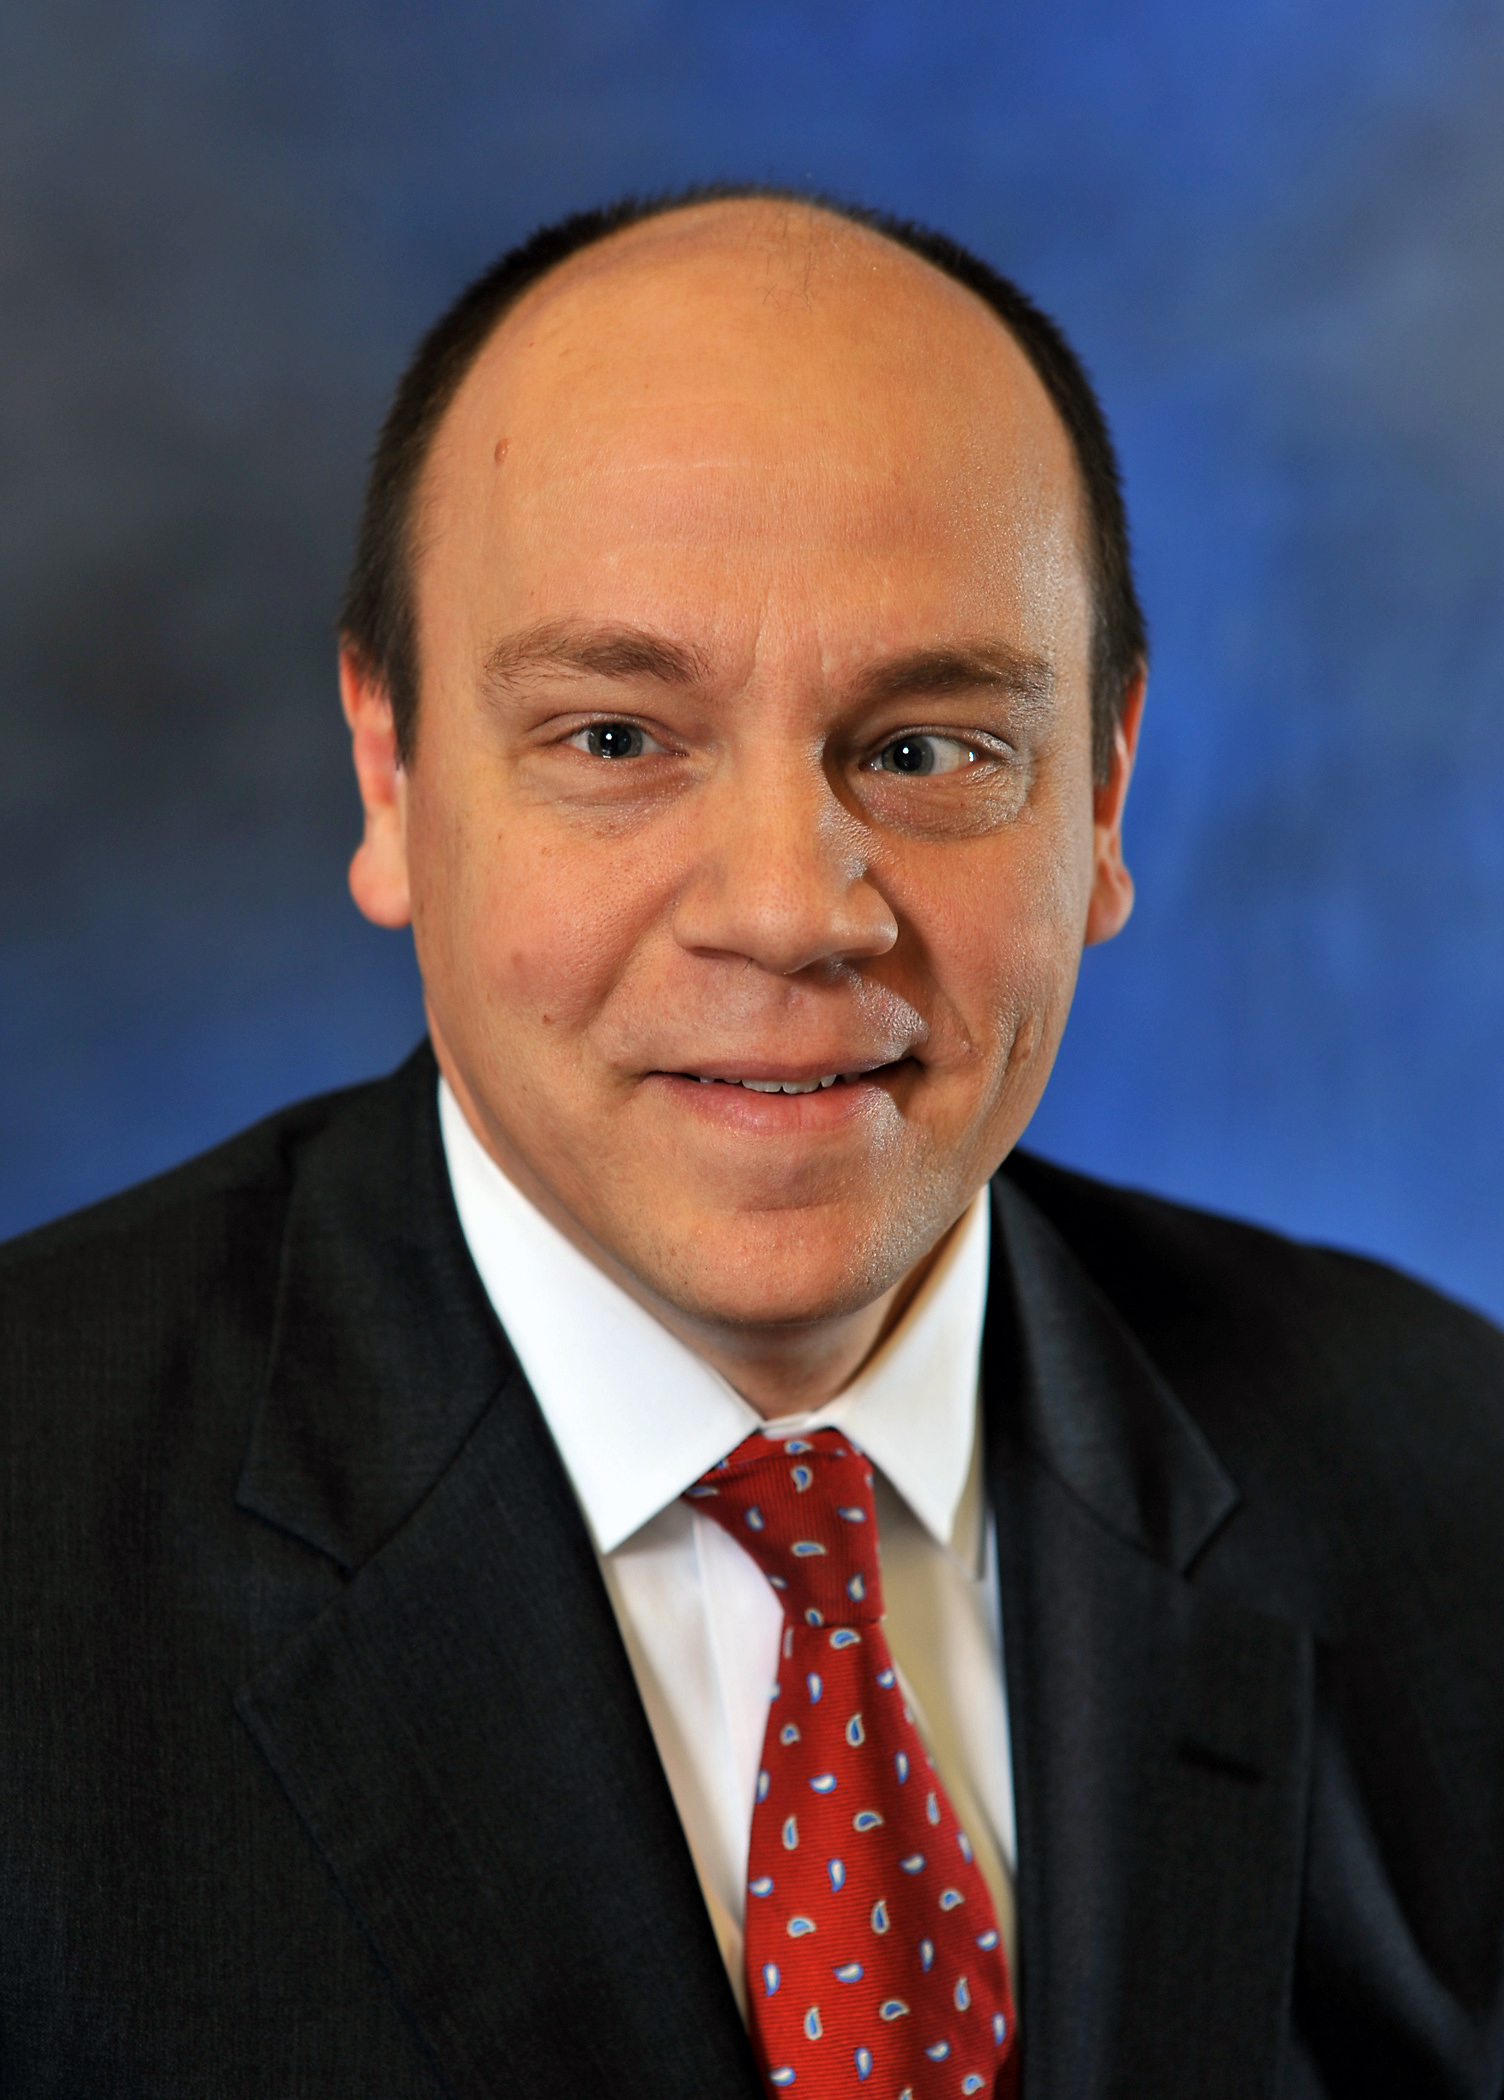 New Jersey Society of CPAs Names Deloitte's Kyle Sell President